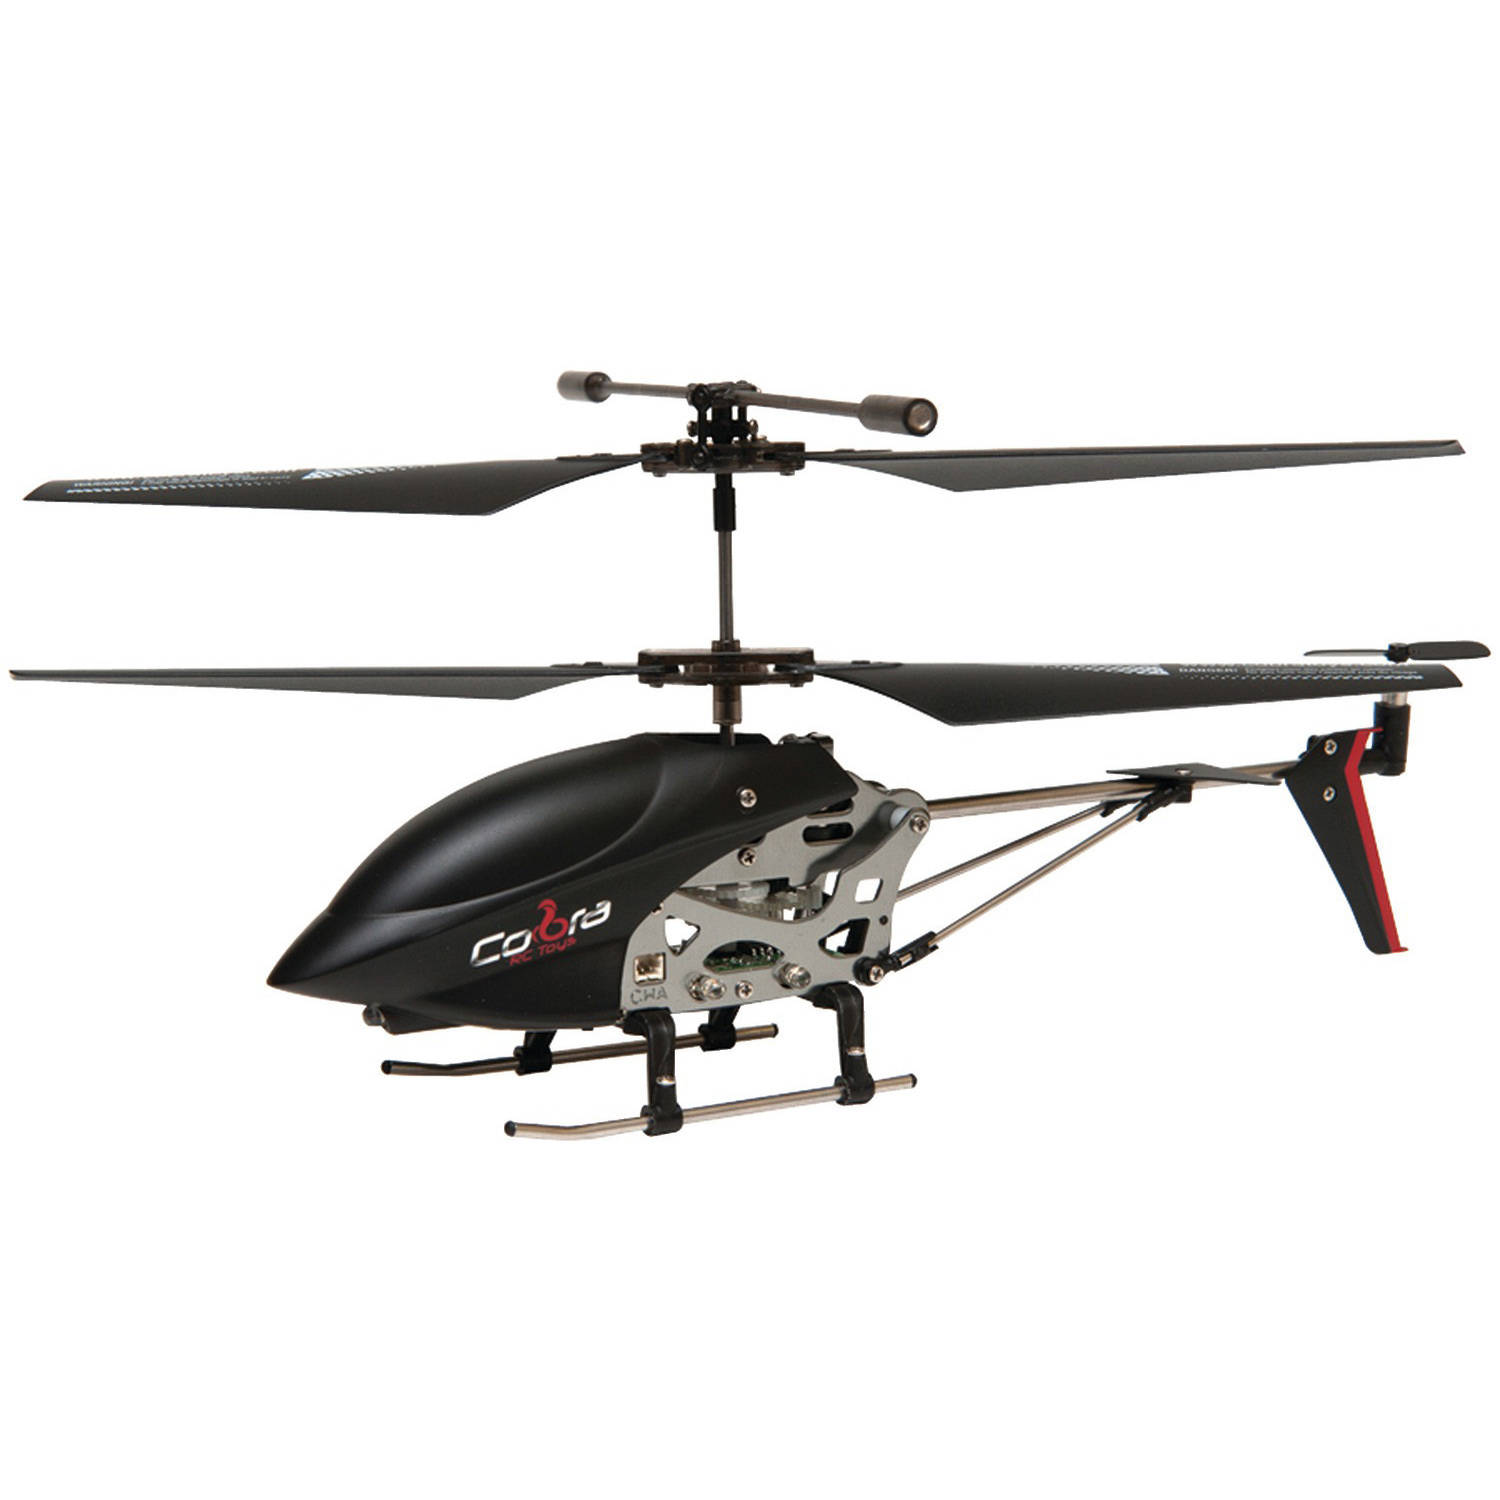 Cobra RC Toys 908720 3.5-Channel Mini Gyro Special Edition RC Helicopter